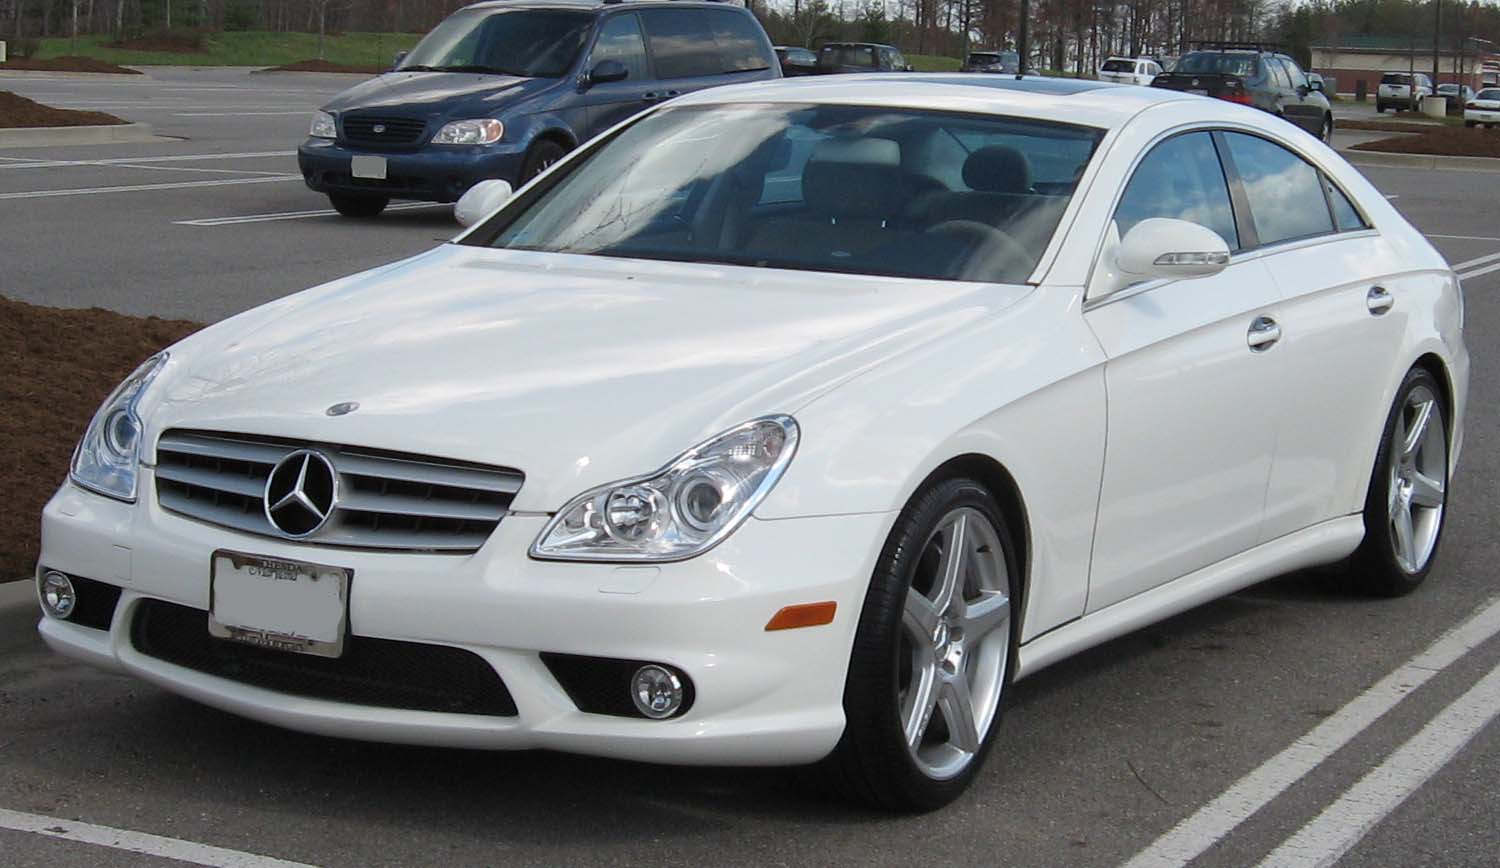 File 2006 mercedes benz cls55 amg wikimedia commons for 2006 mercedes benz cls55 amg